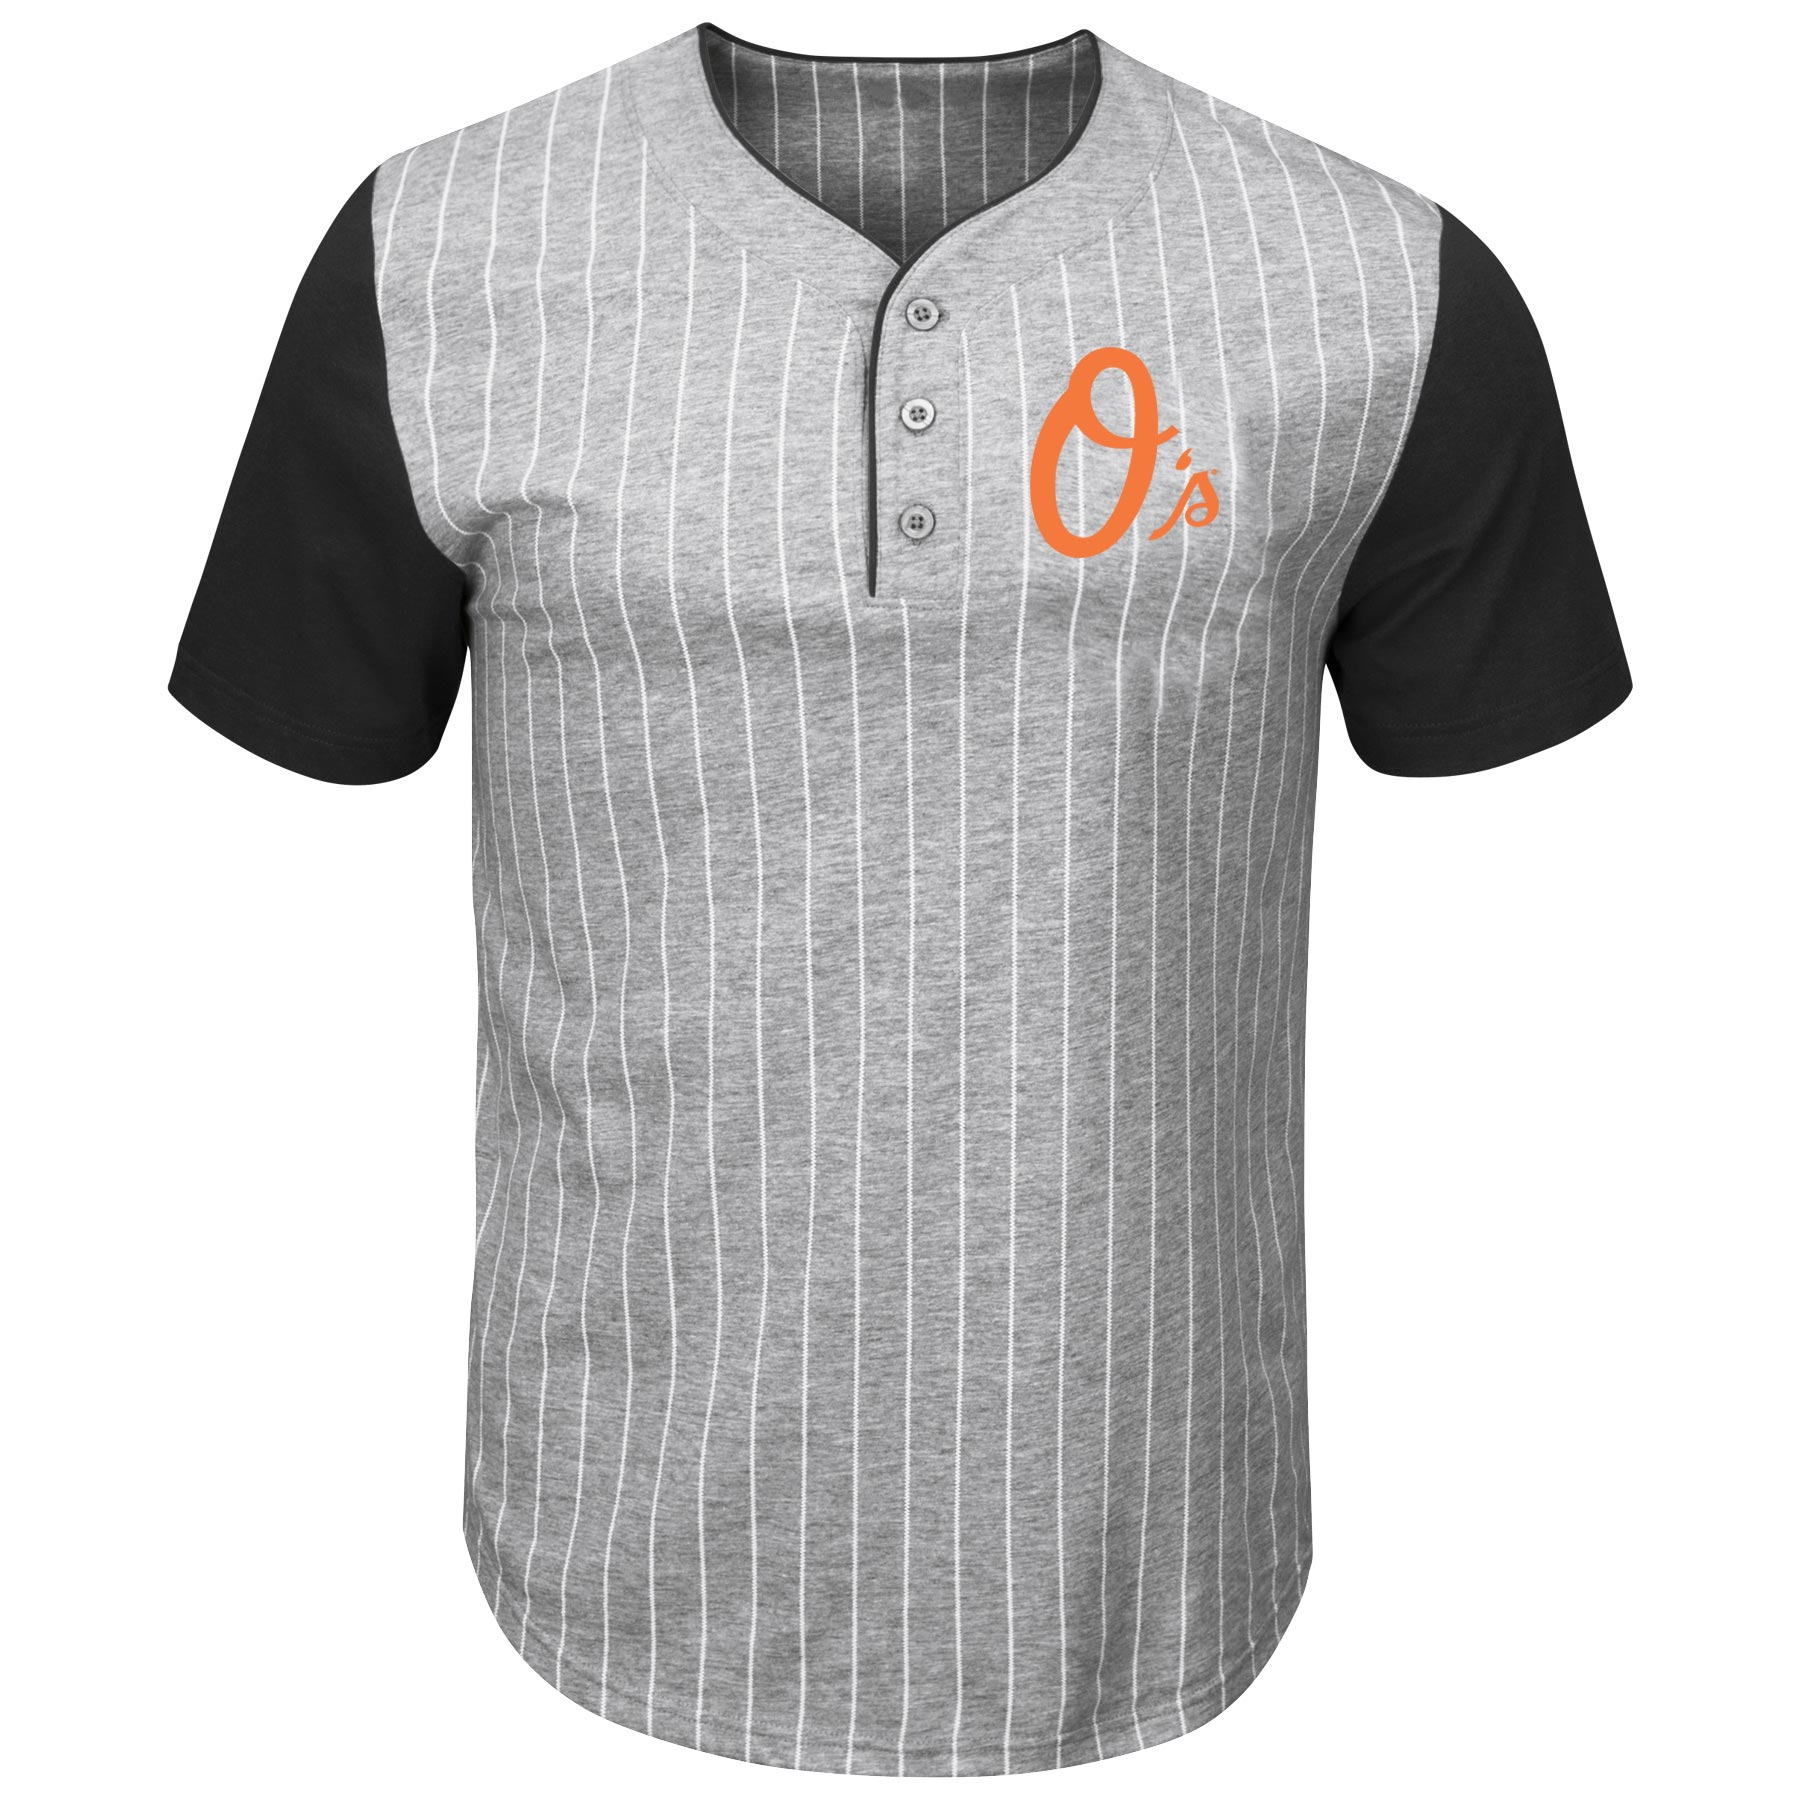 Baltimore Orioles Majestic Big & Tall Life or Death Pinstripe Henley T-Shirt - Gray/Black